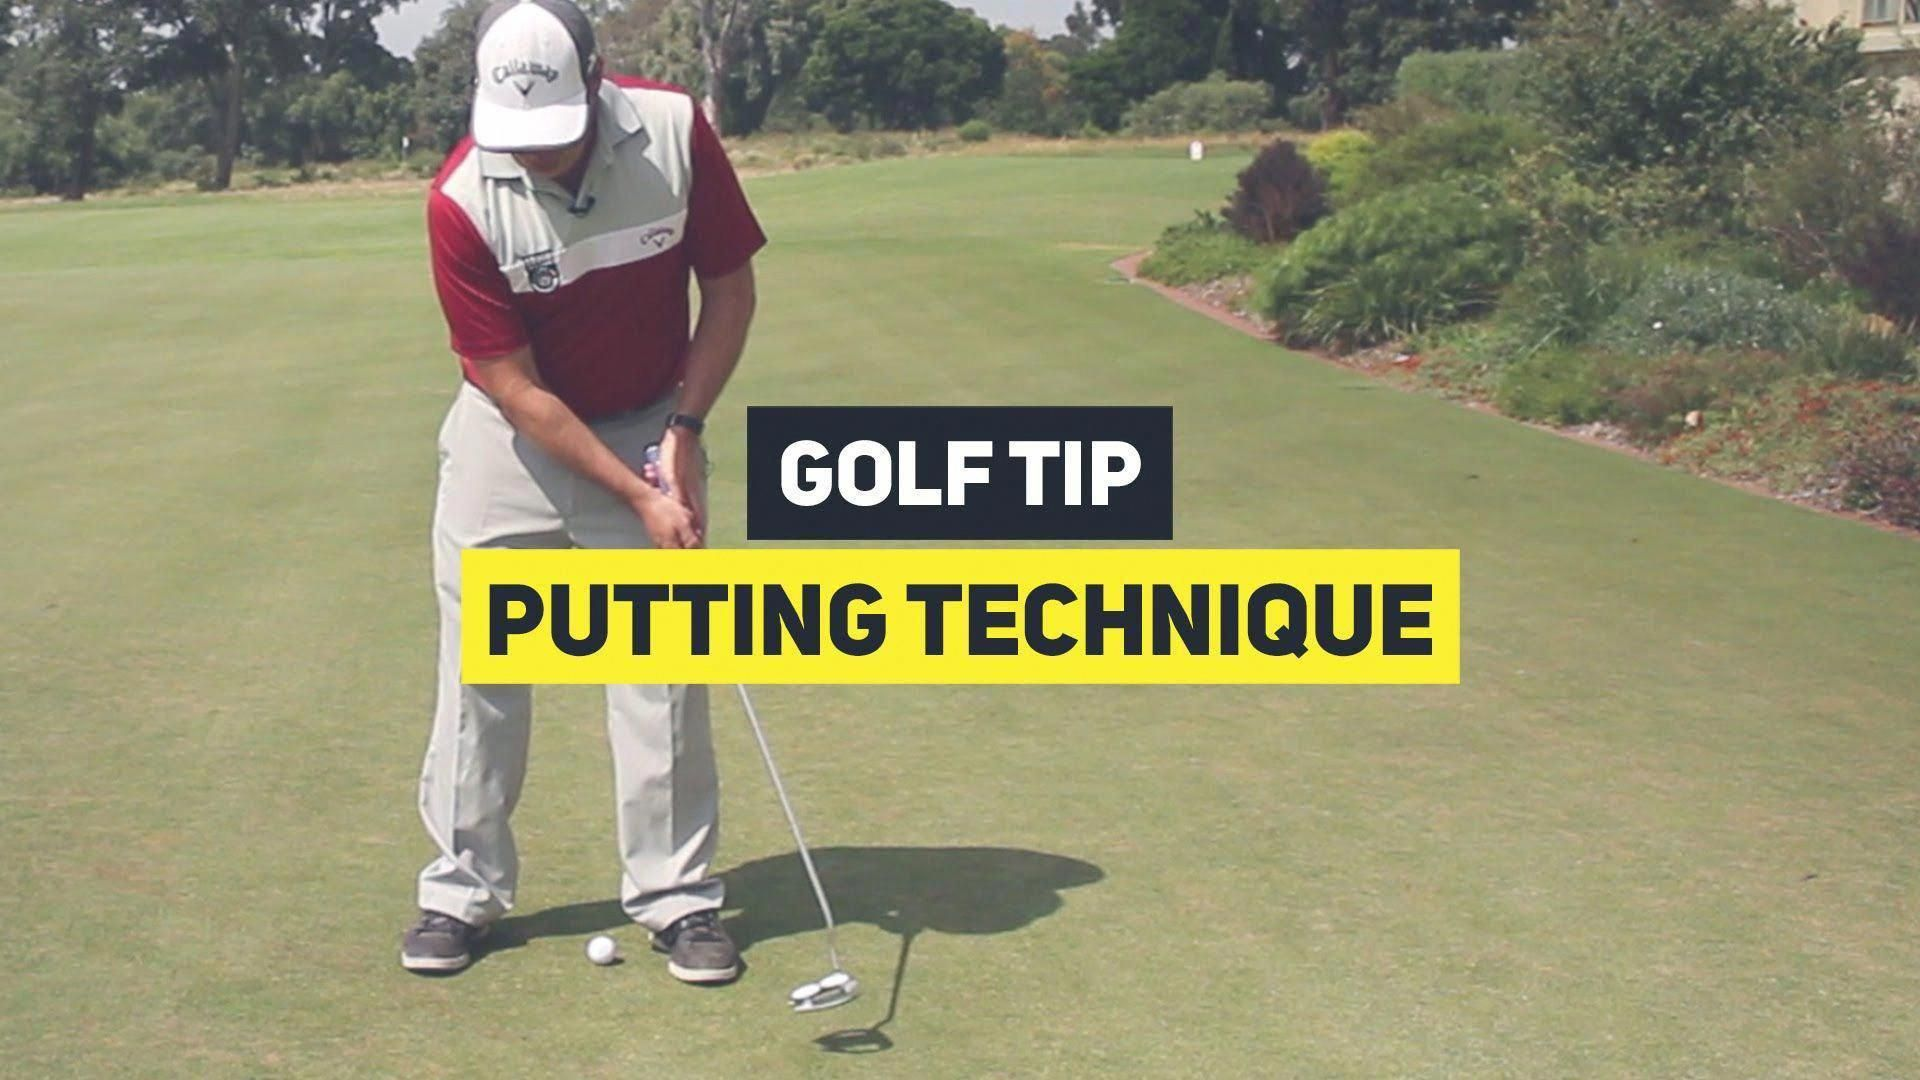 Practice Proper Golf Swing With Your Chest Up – Tips to Improve Your Golf Swing